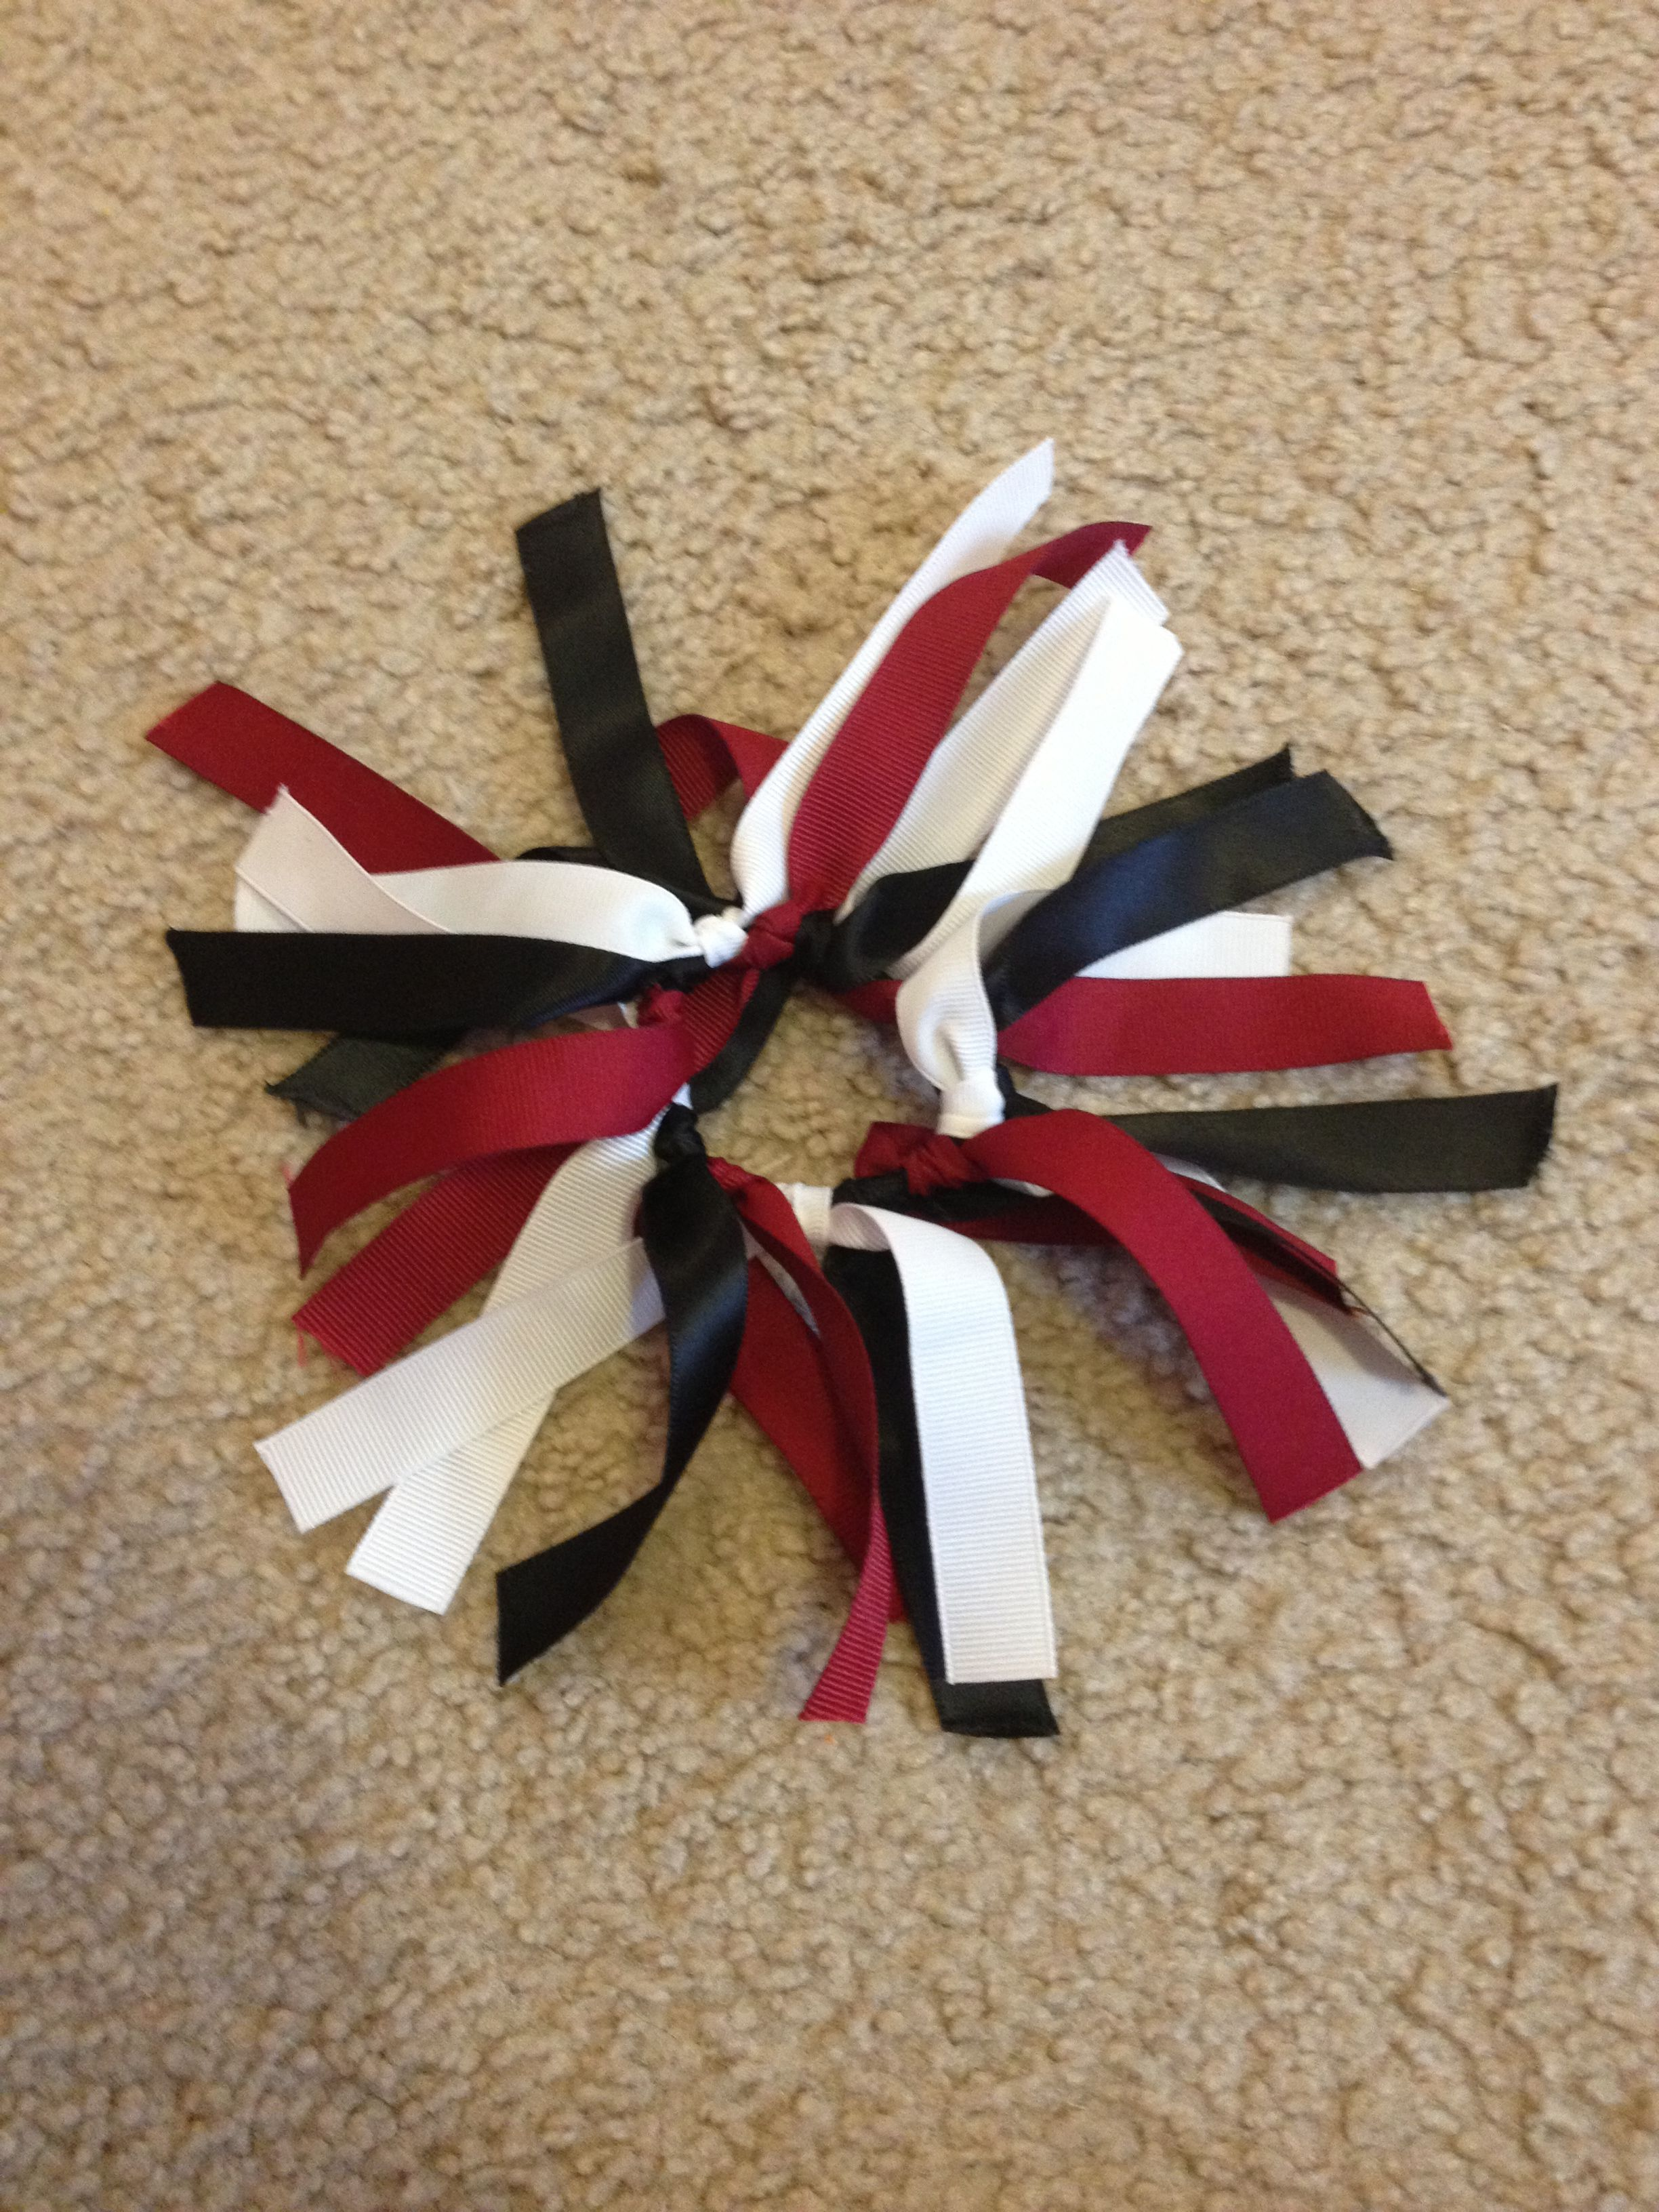 Ribbon scrunchie for volleyball season. Simple to make and looks